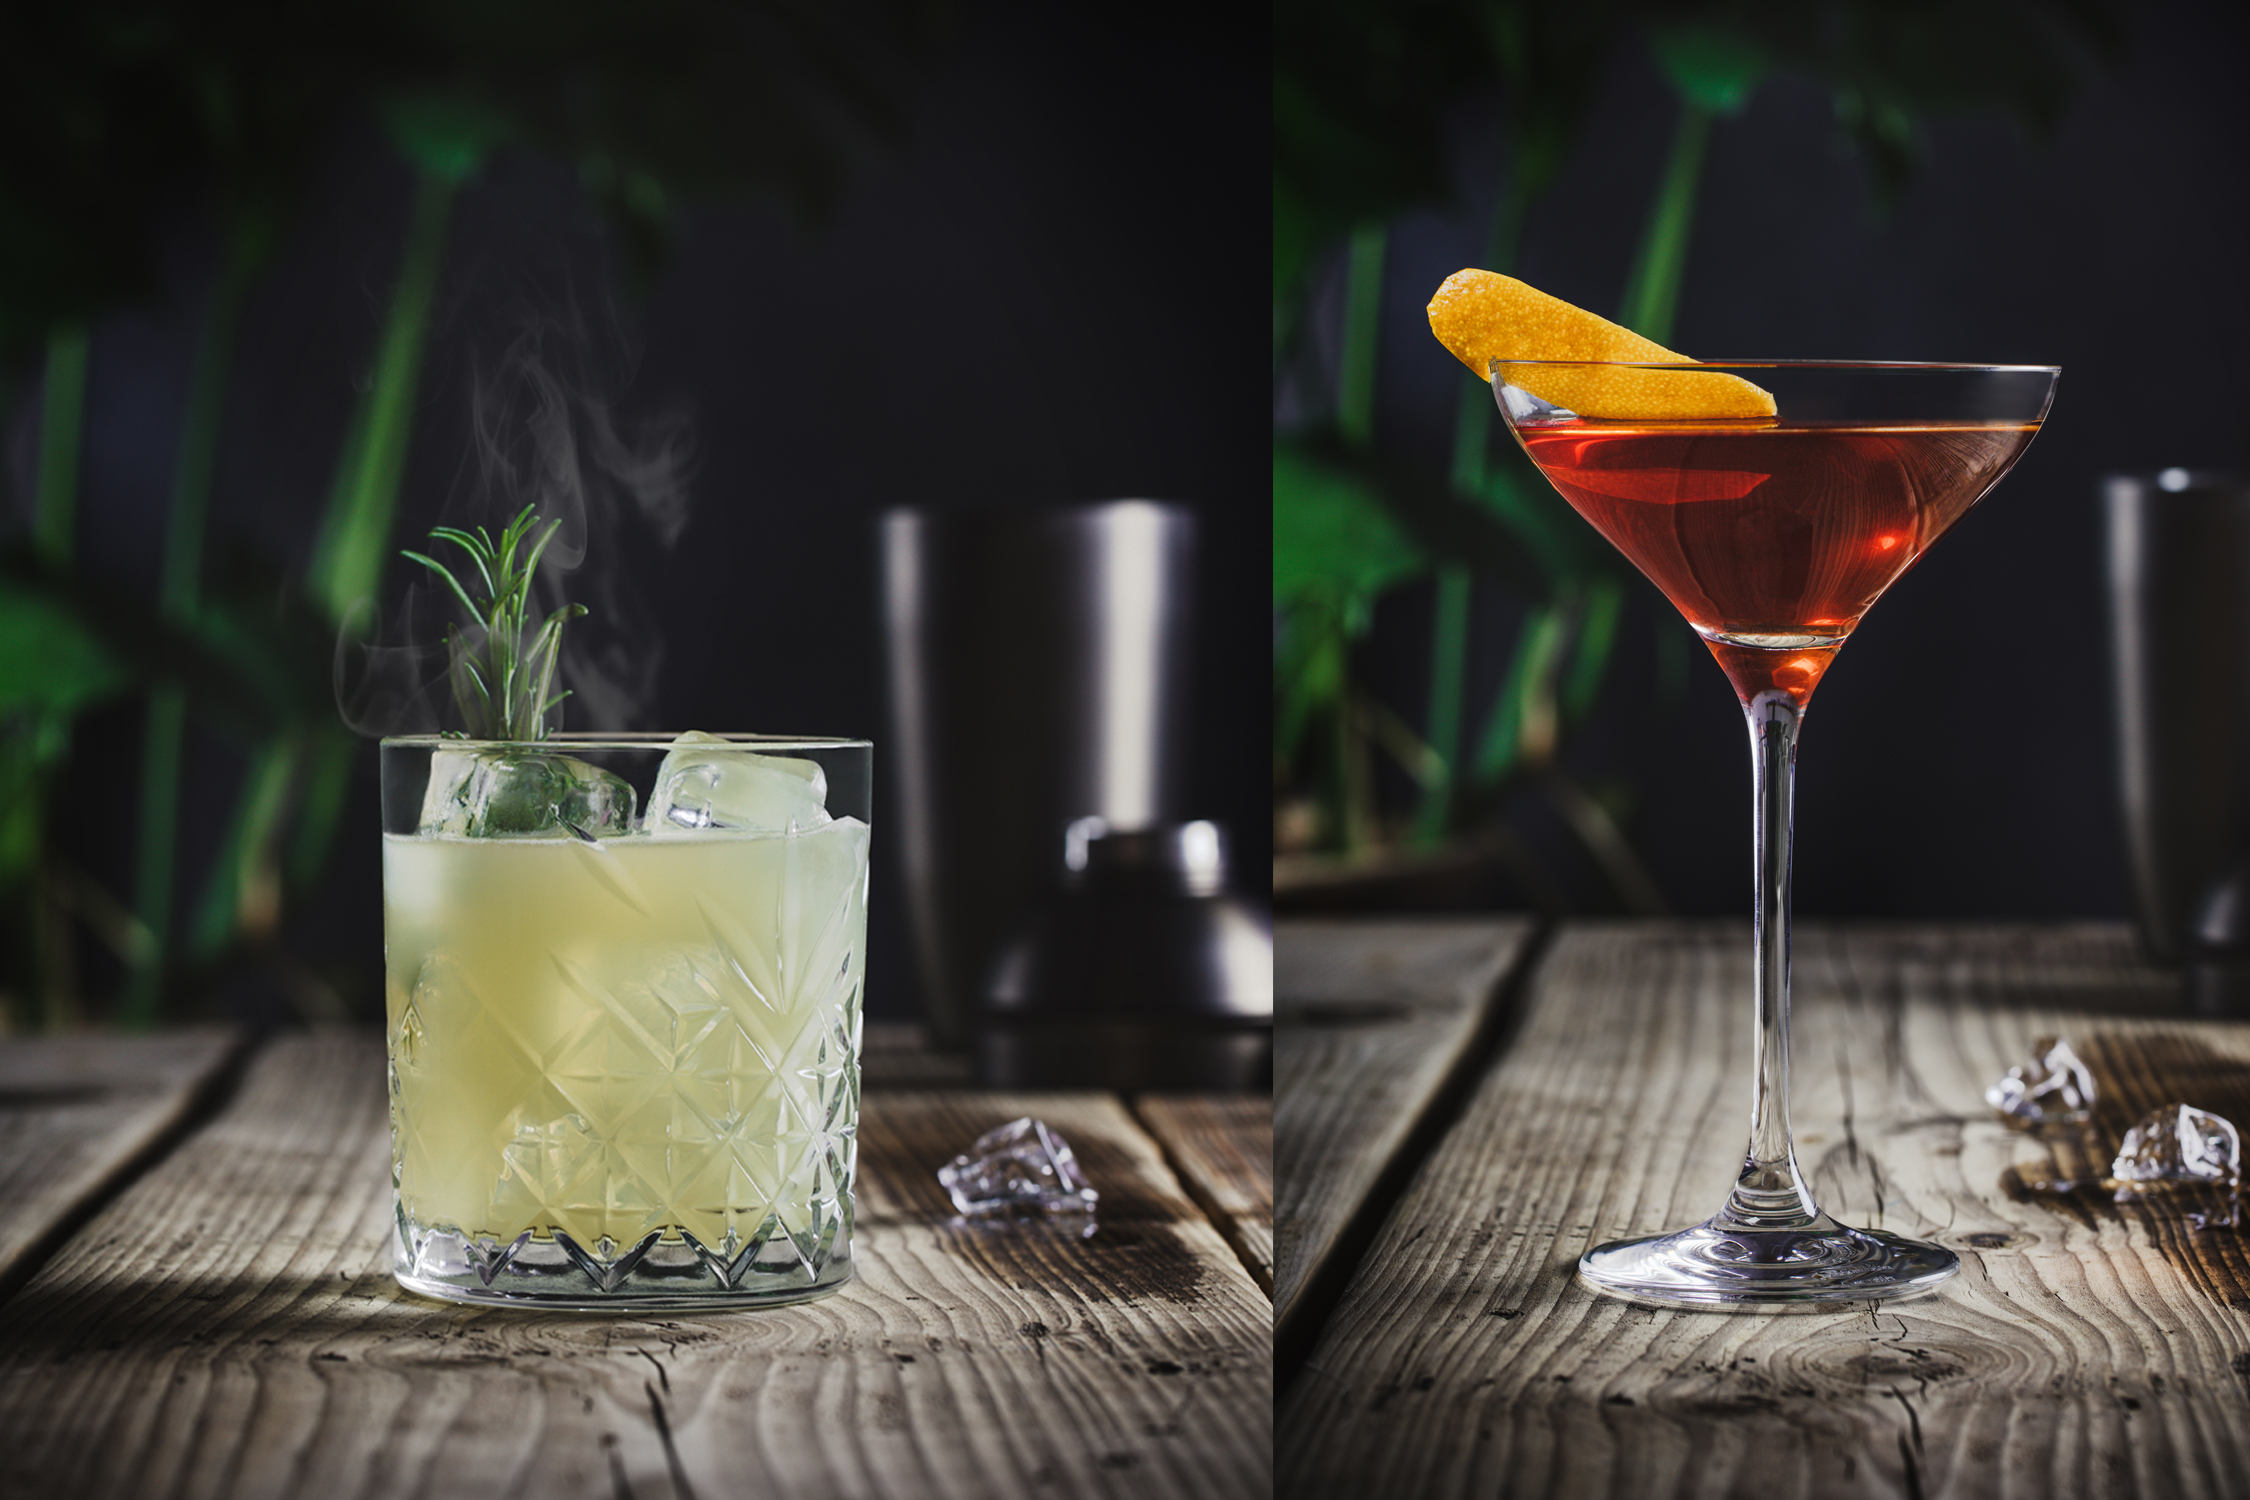 Cocktail lifestyle photography